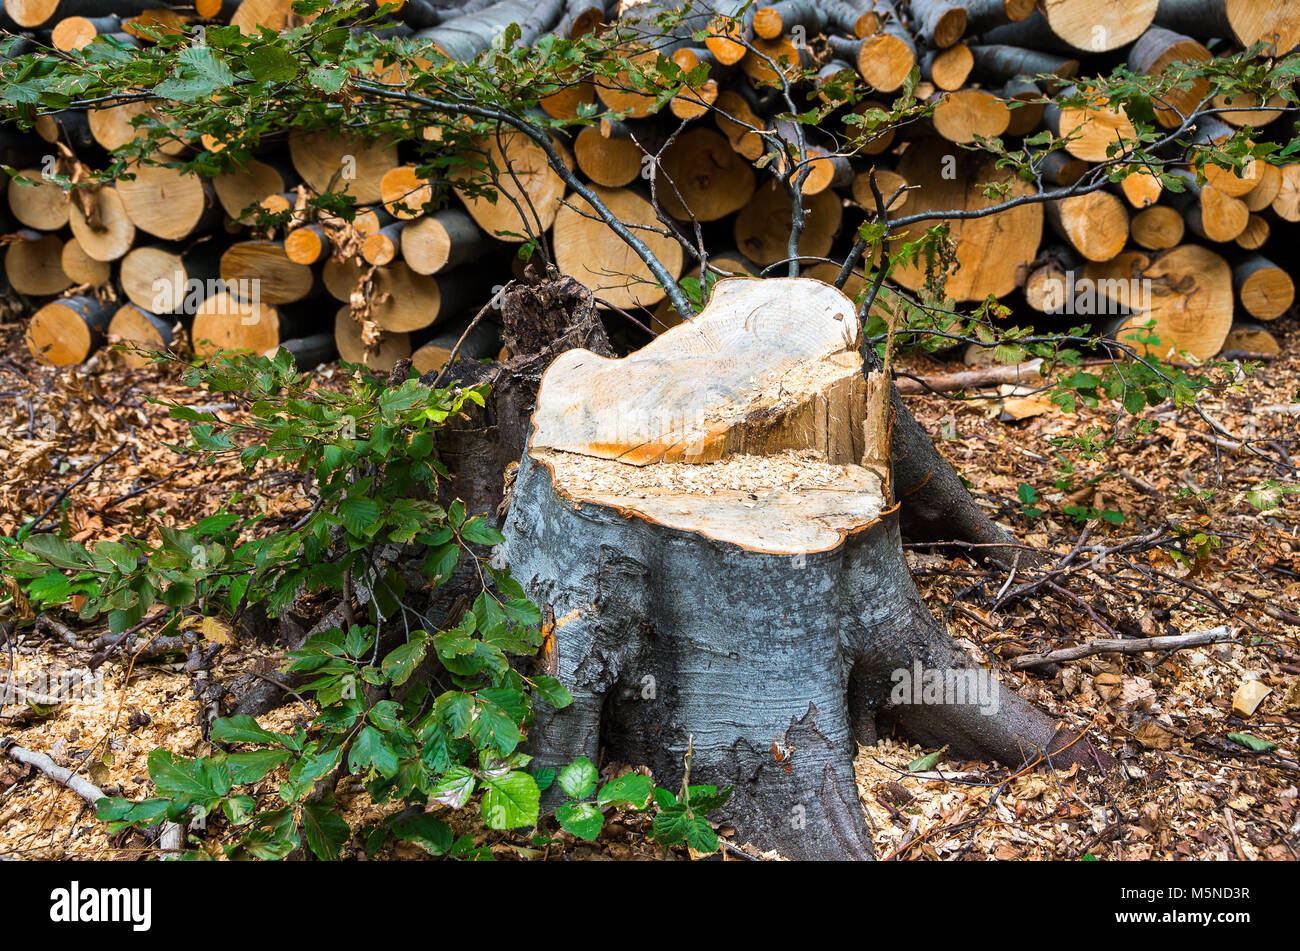 illegal felling of trees in the forest - Stock Image